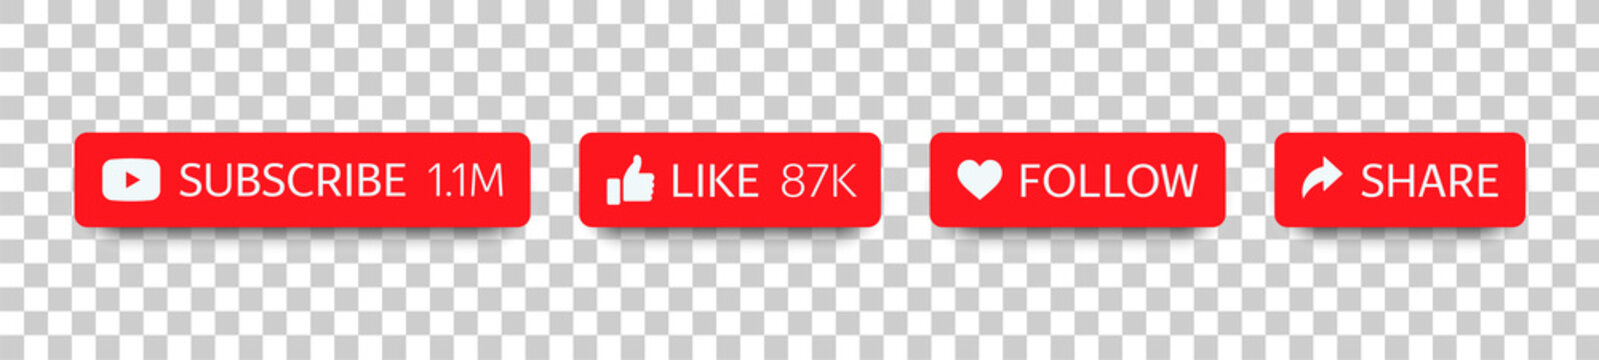 YouTube buttons set for social media and channel. Flat buttons (Subscribe, Like, Follow, Share) with shadow isolated on transparent background. Vector illustration EPS10